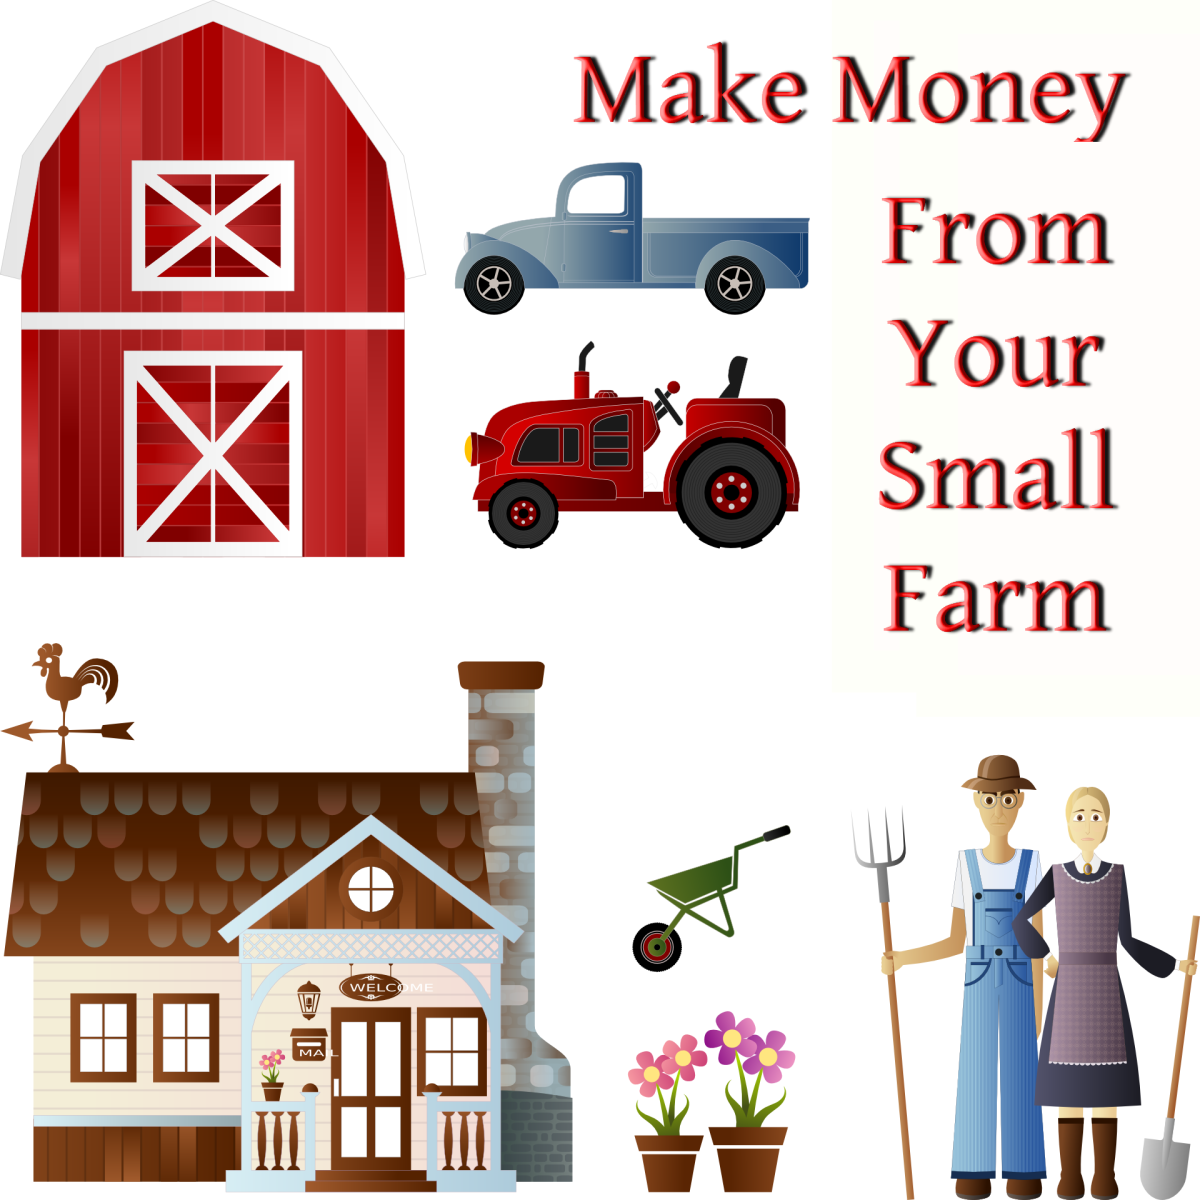 27 Ways to Make Money From Your Small Farm | ToughNickel